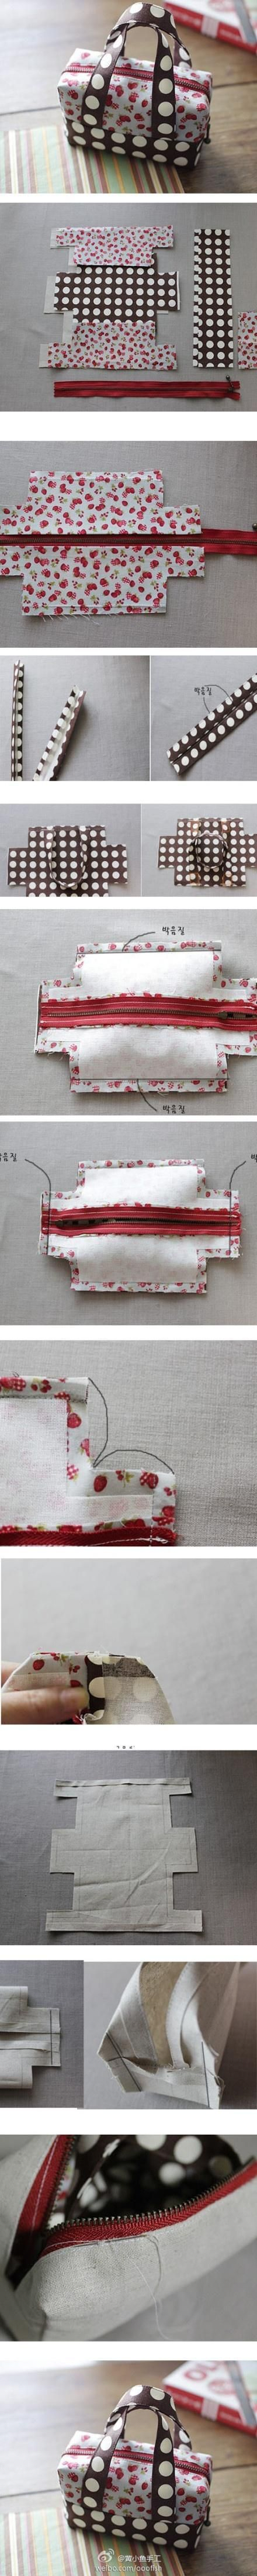 DIY Tutorial: DIY Accessories / DIY Bag - (*if I learn to sew better on a machine instead of by hand*)